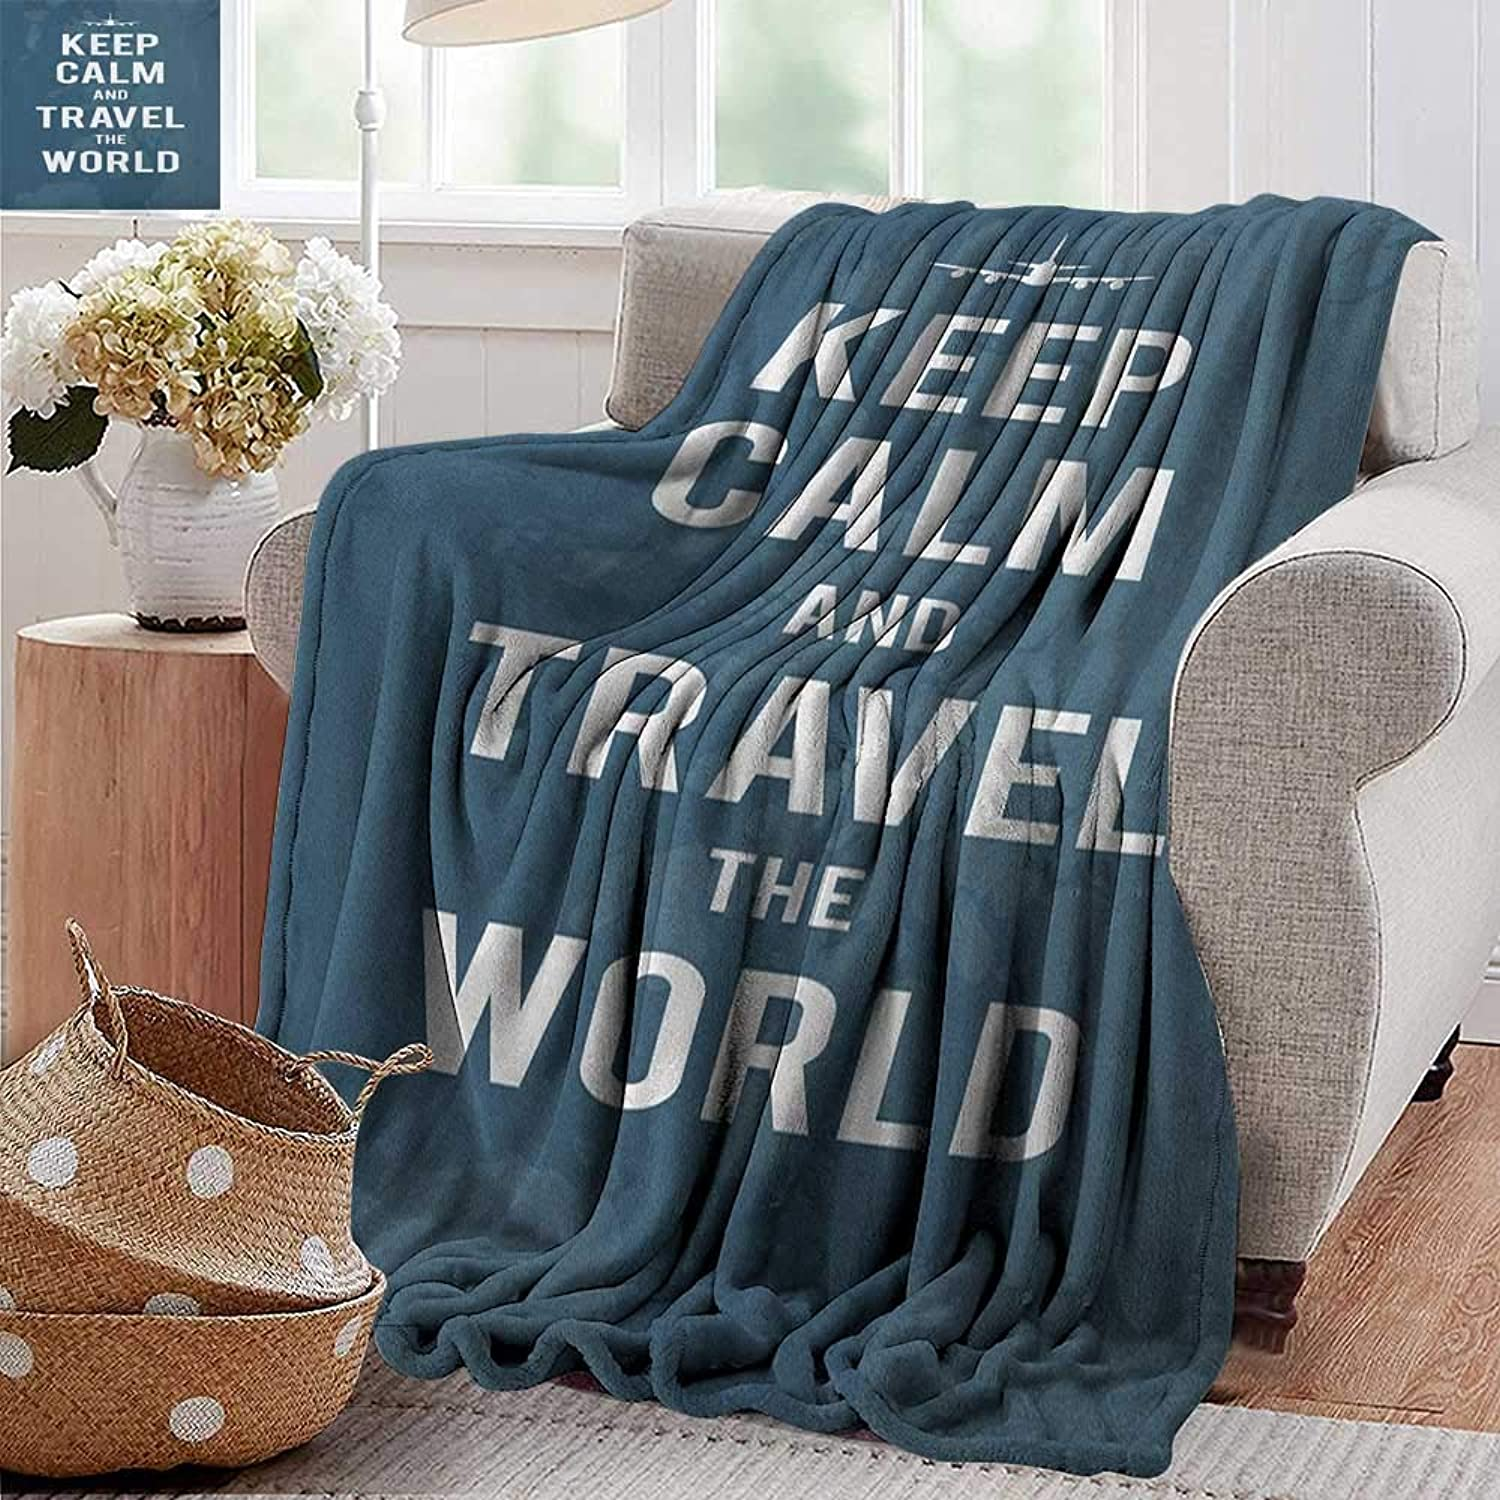 Weighted Blanket for Kids,Keep Calm,Travel The World Quote on a Faded Map of United Kingdom and a Plane Silhouette, bluee White,Weighted Blanket for Adults Kids, Better Deeper Sleep 50 x70